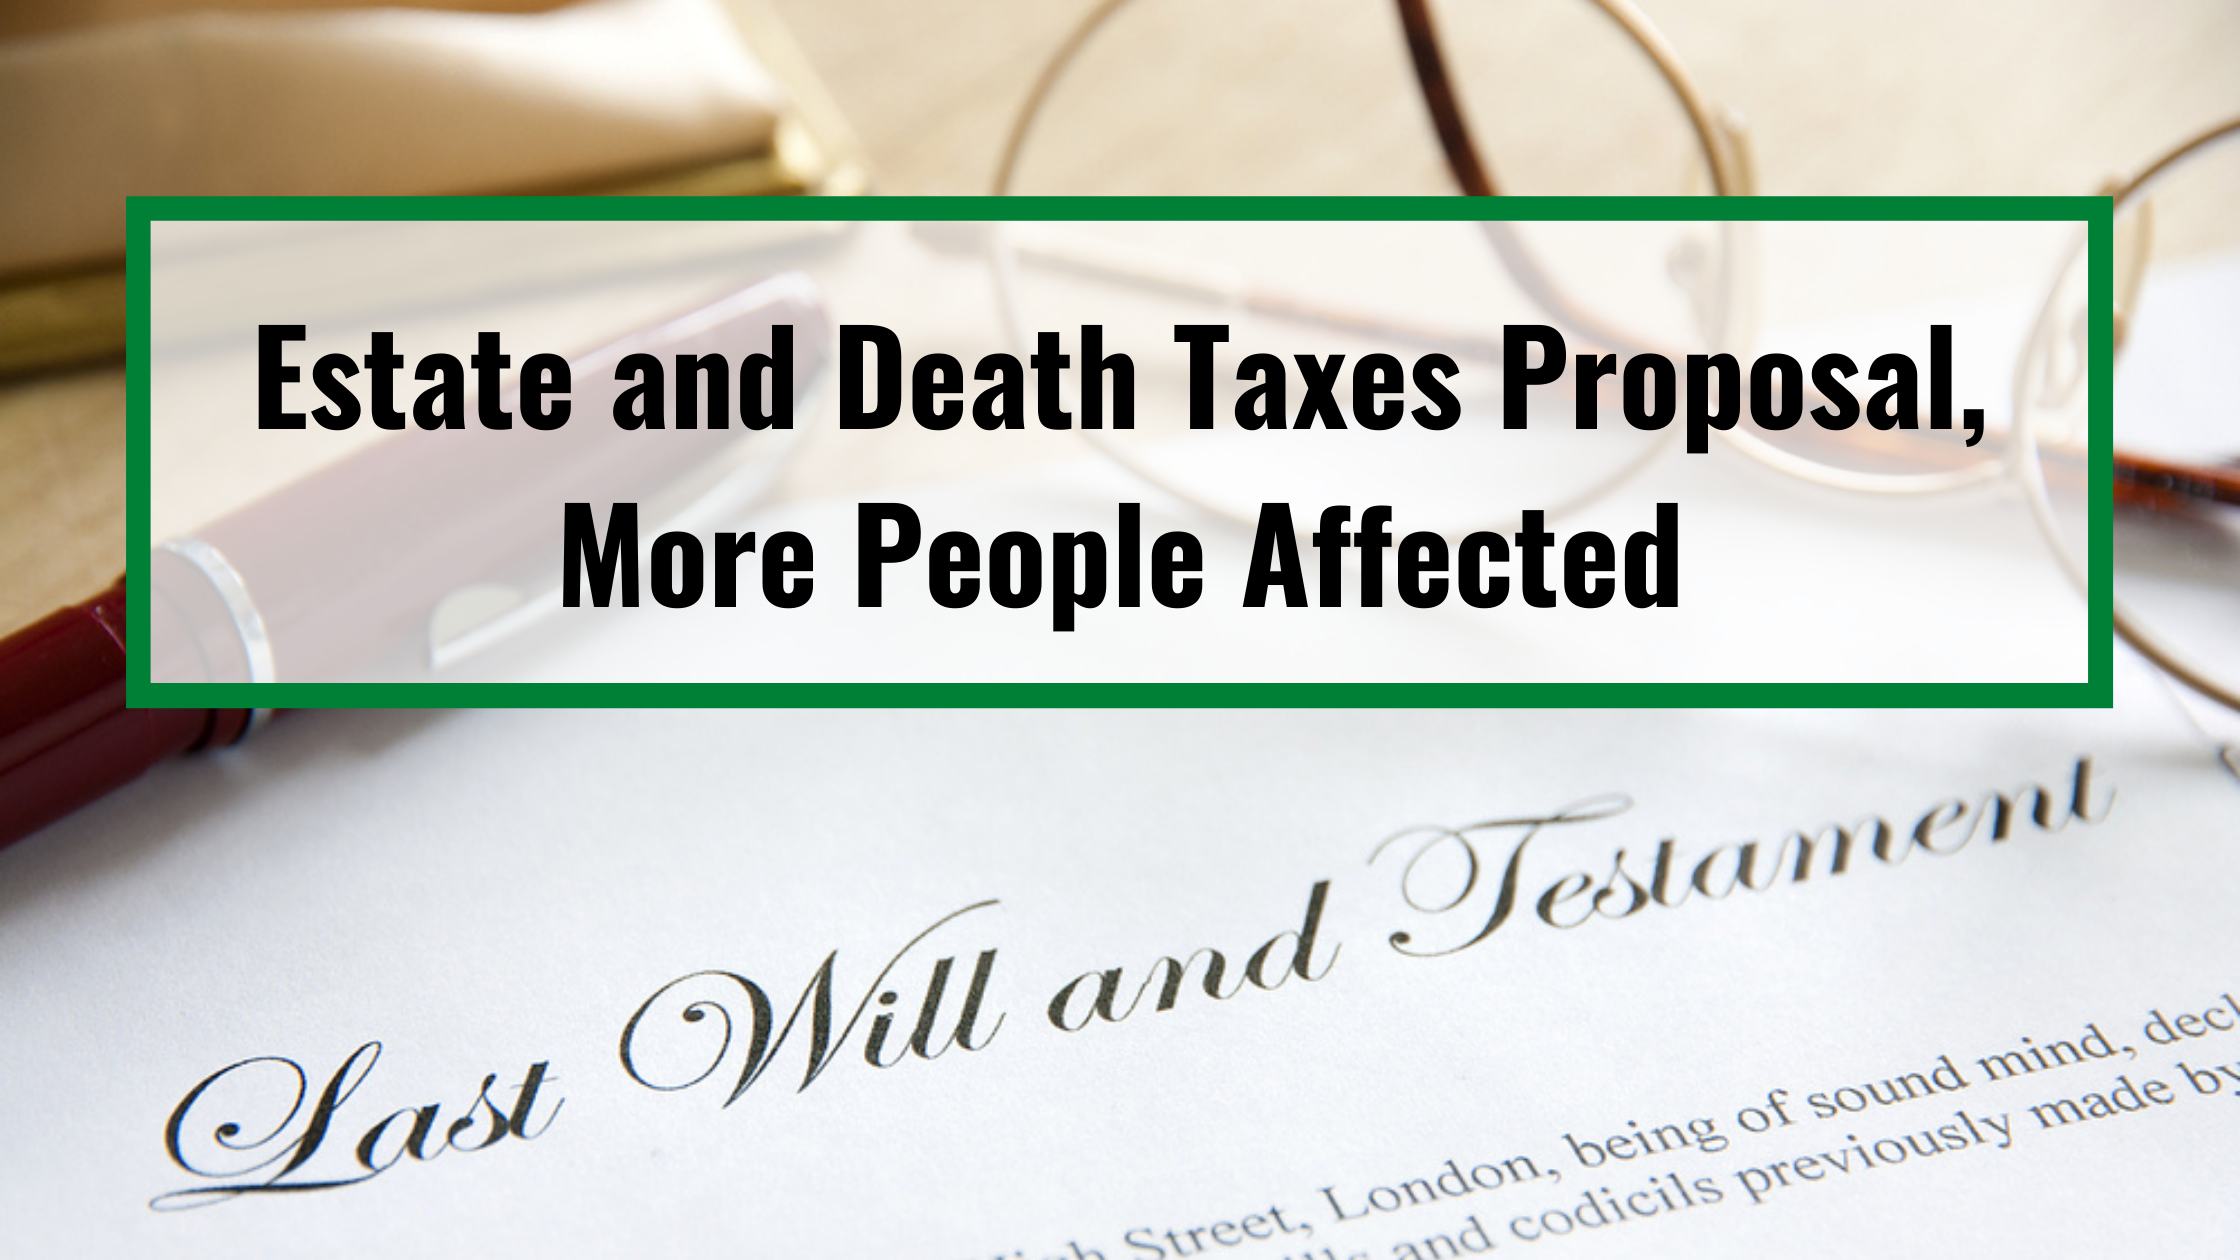 Estate and Death Taxes Proposal, More People Affected